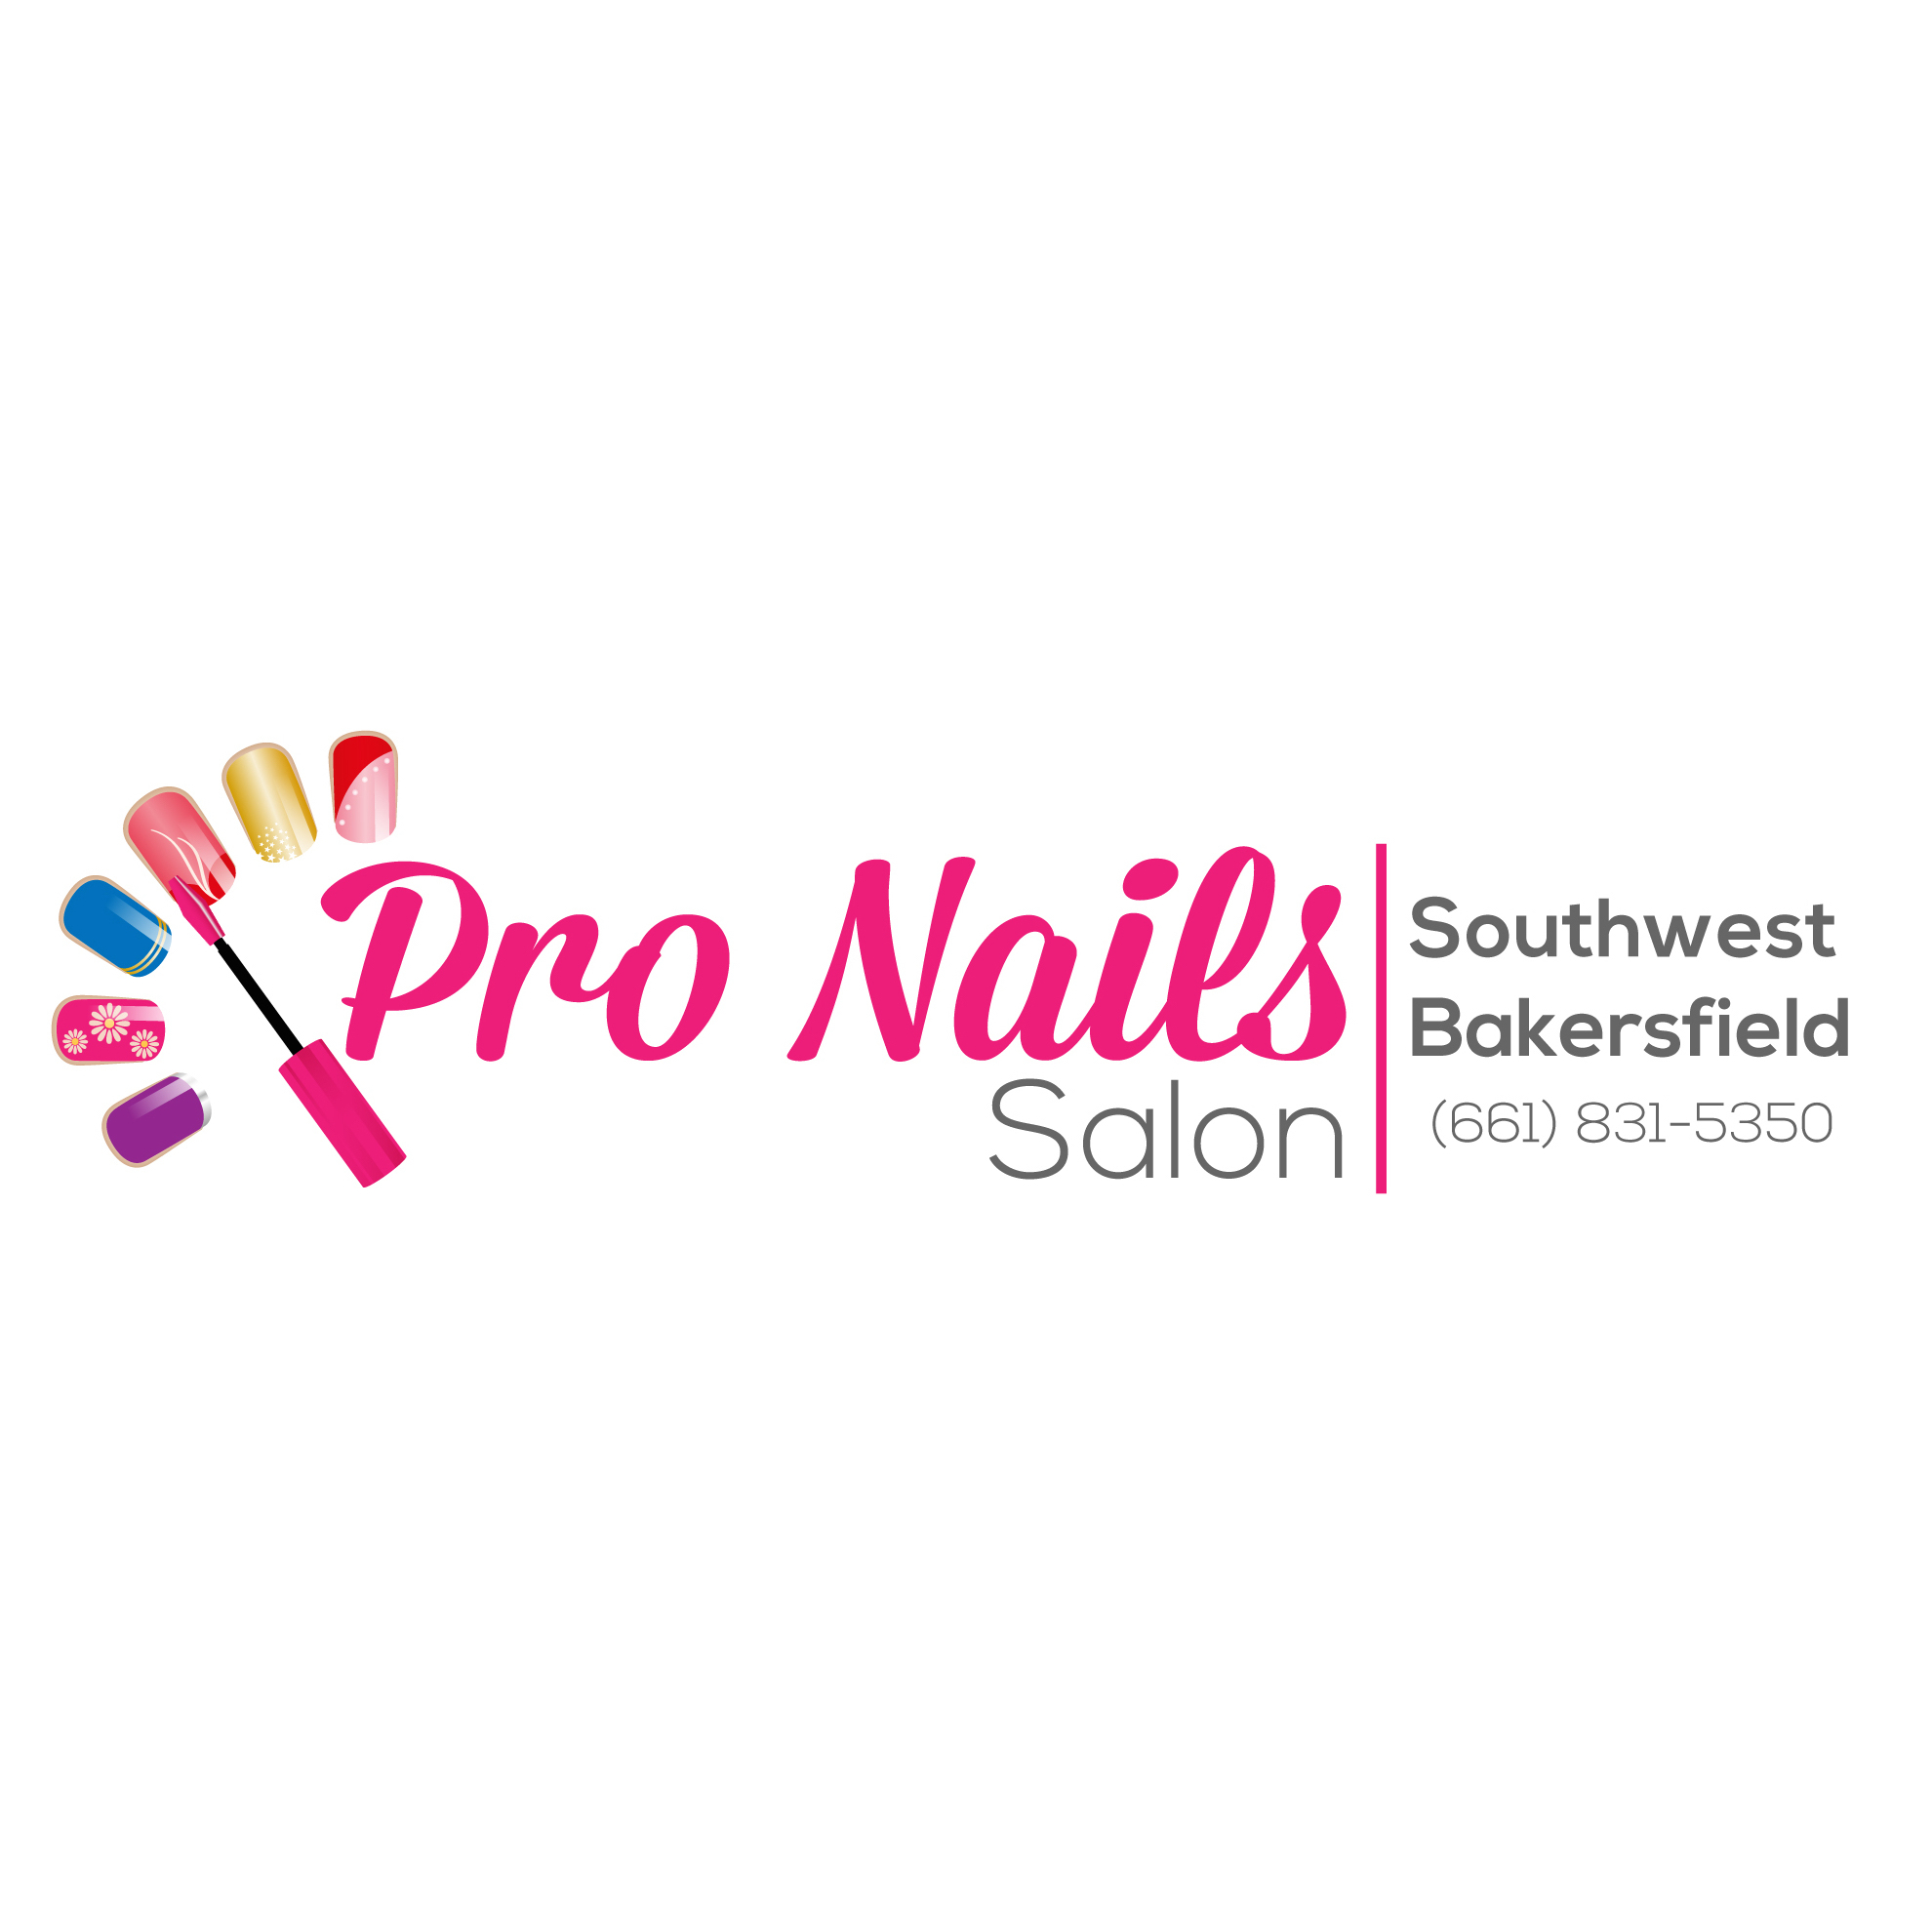 Pro Nails Salon